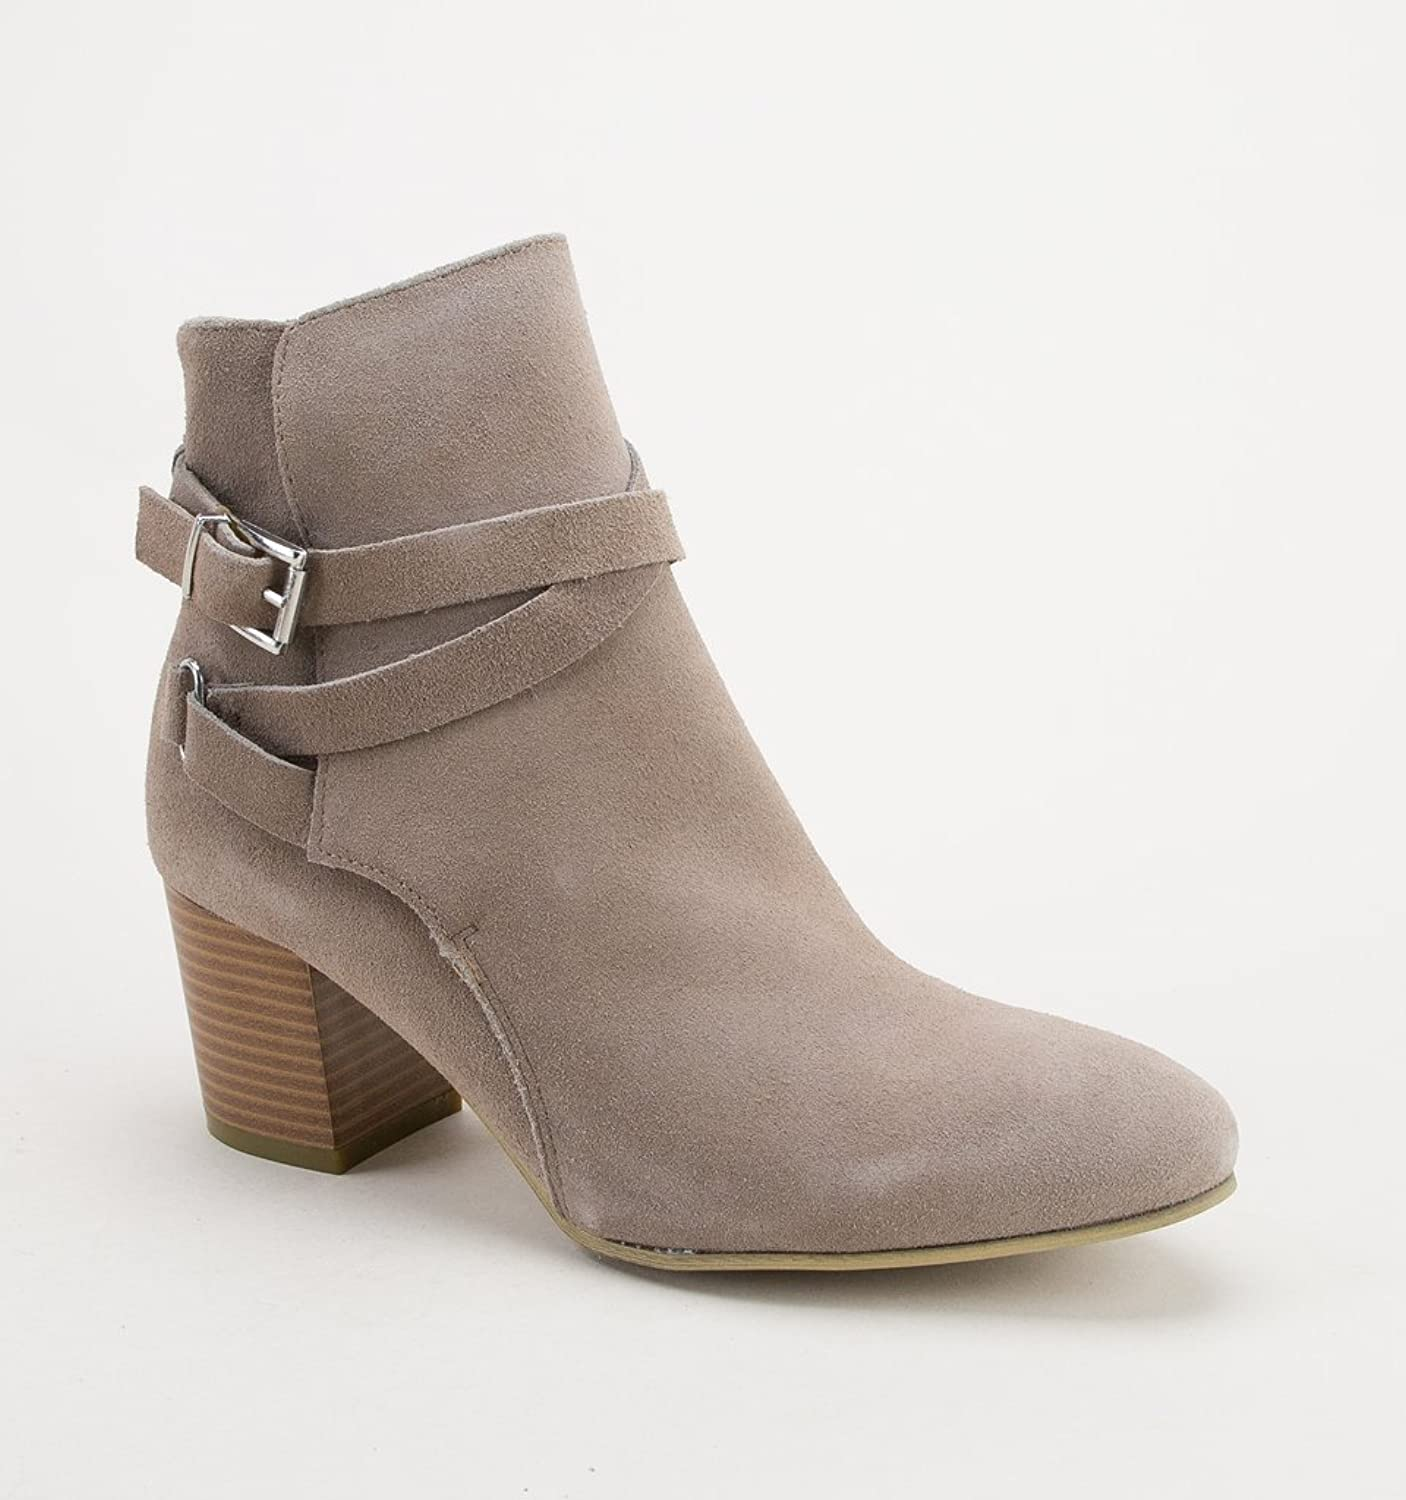 Divaz Womens Arianna Ankle Boot with Heels Taupe Size UK 5 EU 38